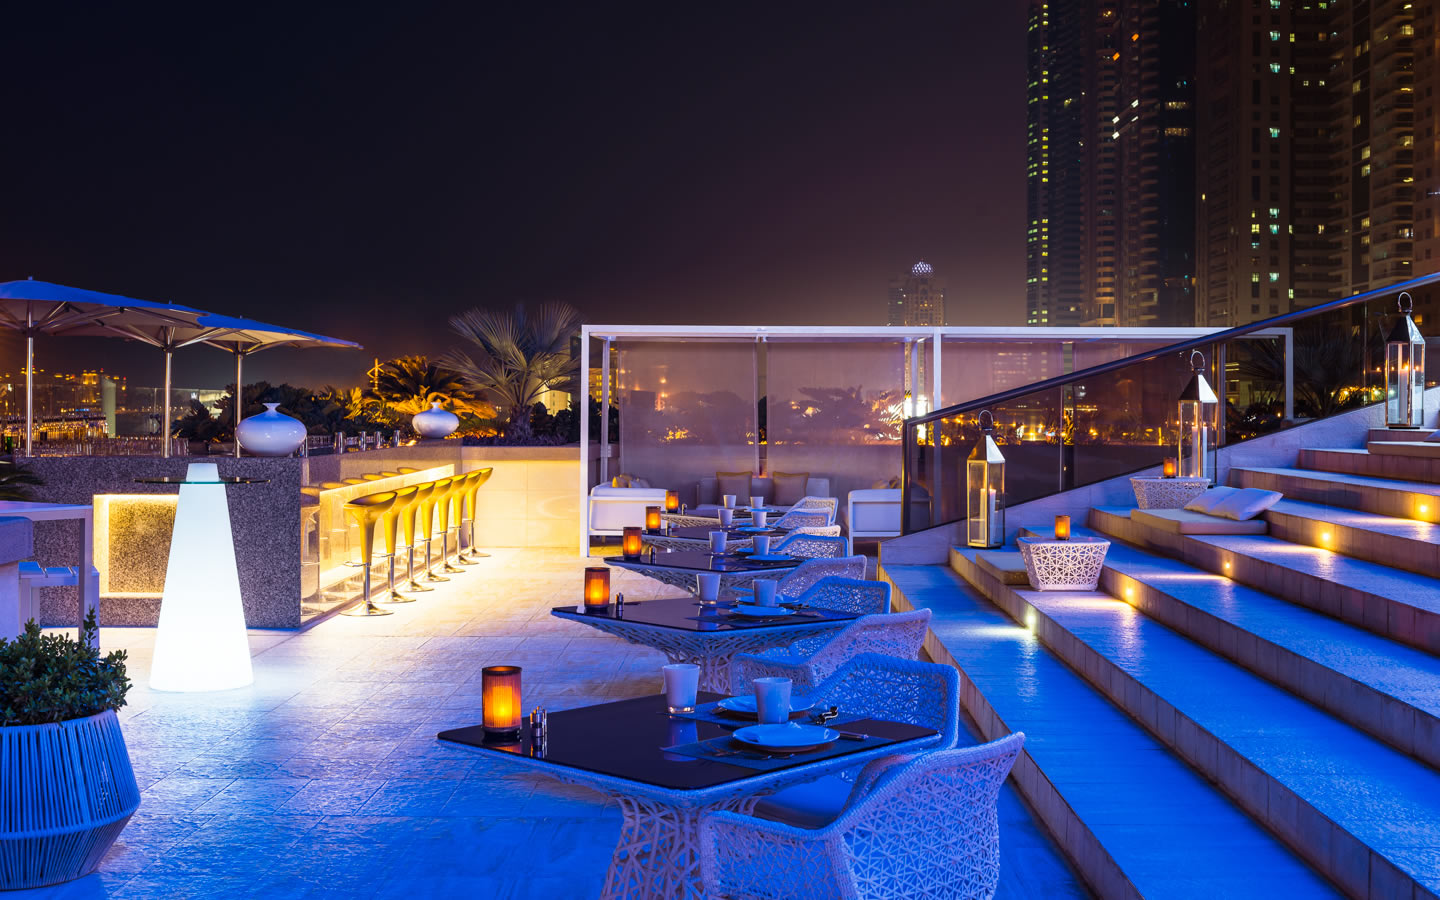 15 Best outdoor terraces in Dubai - Siddhara Lounge, Grosvenor House